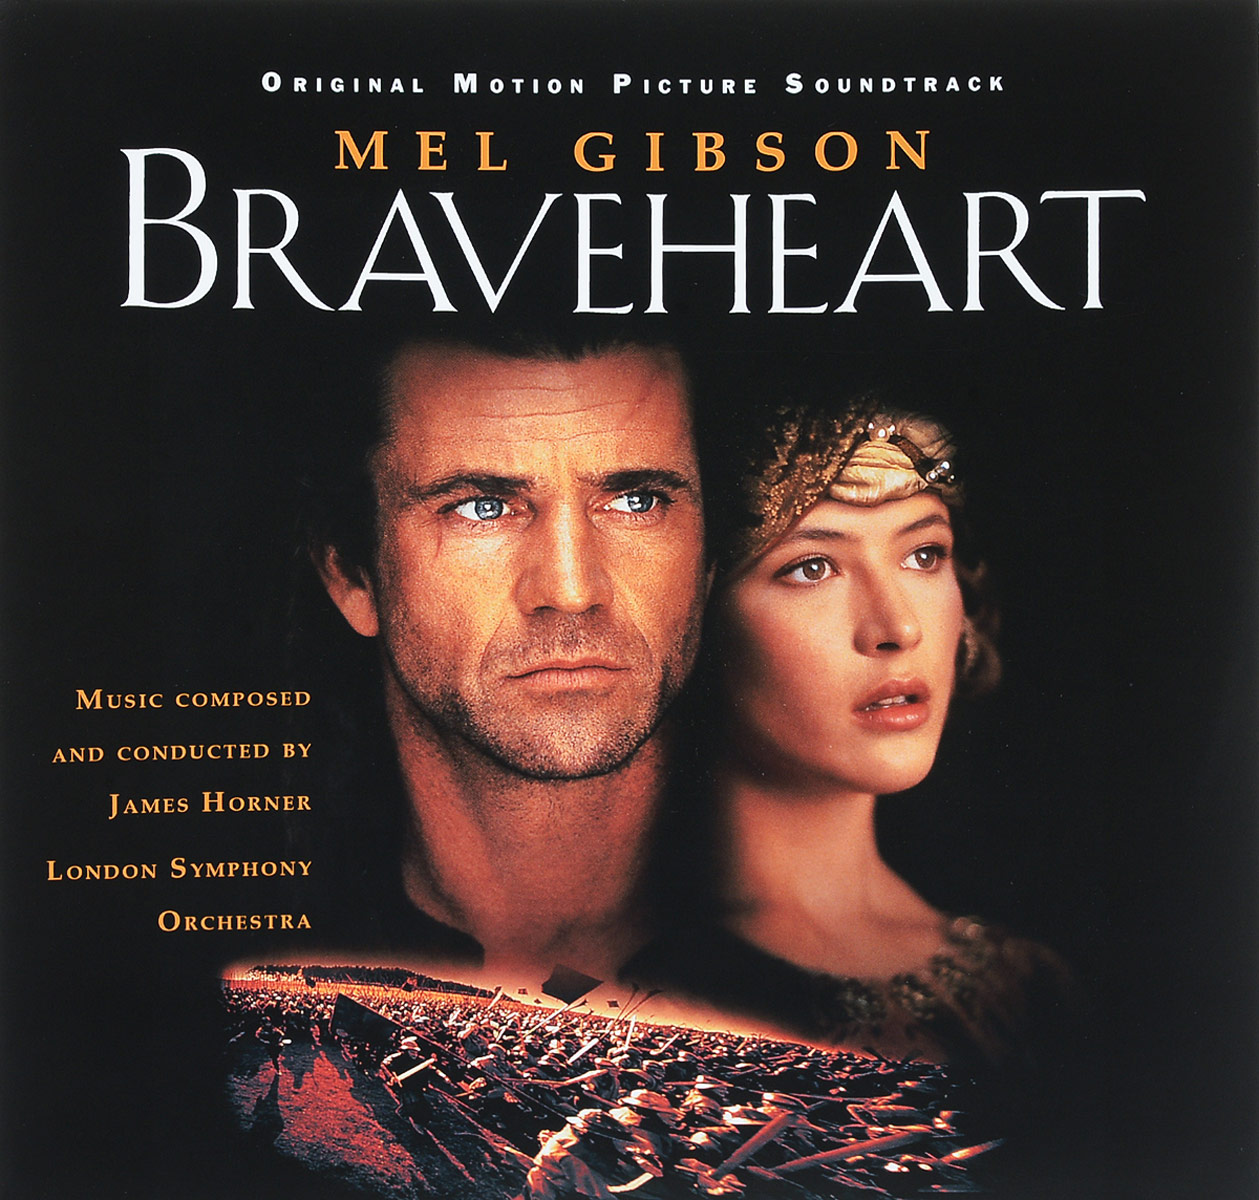 James Horner, London Symphony Orchestra. Braveheart (Original Motion Picture Soundtrack) (2 LP)